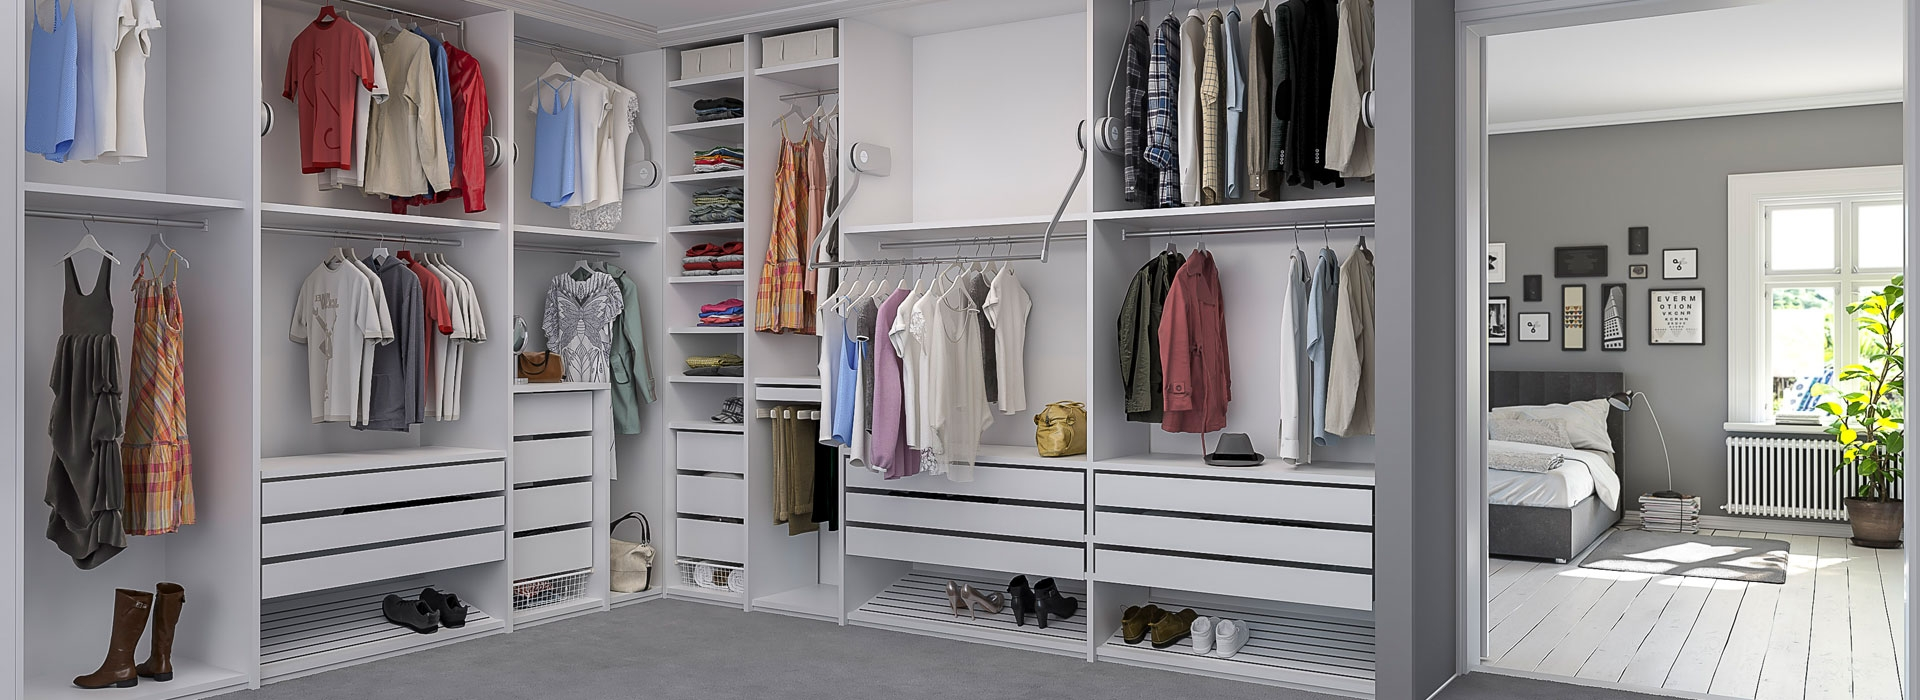 <h2>Electric Wardrobe Lift</h2>